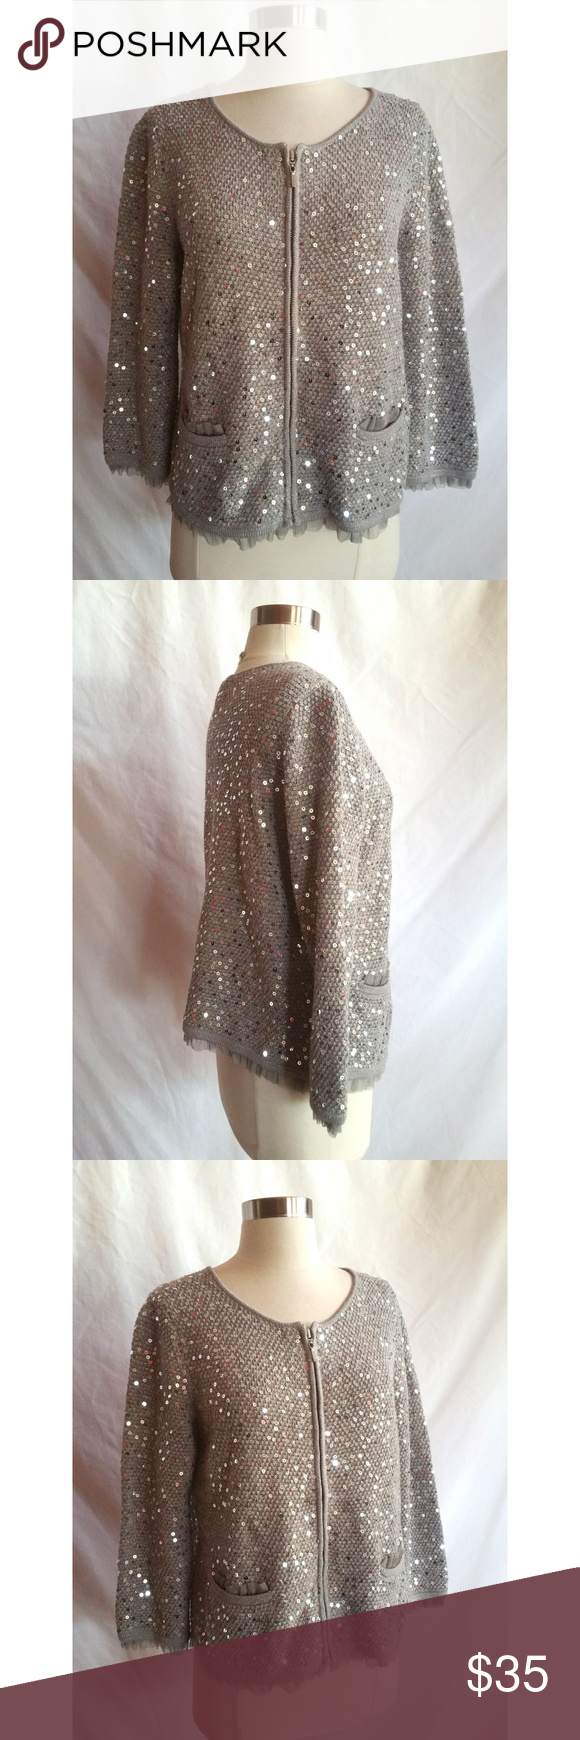 Chico's Size M Silver Gray Sequin Cardigan | Sequin cardigan, Hand ...